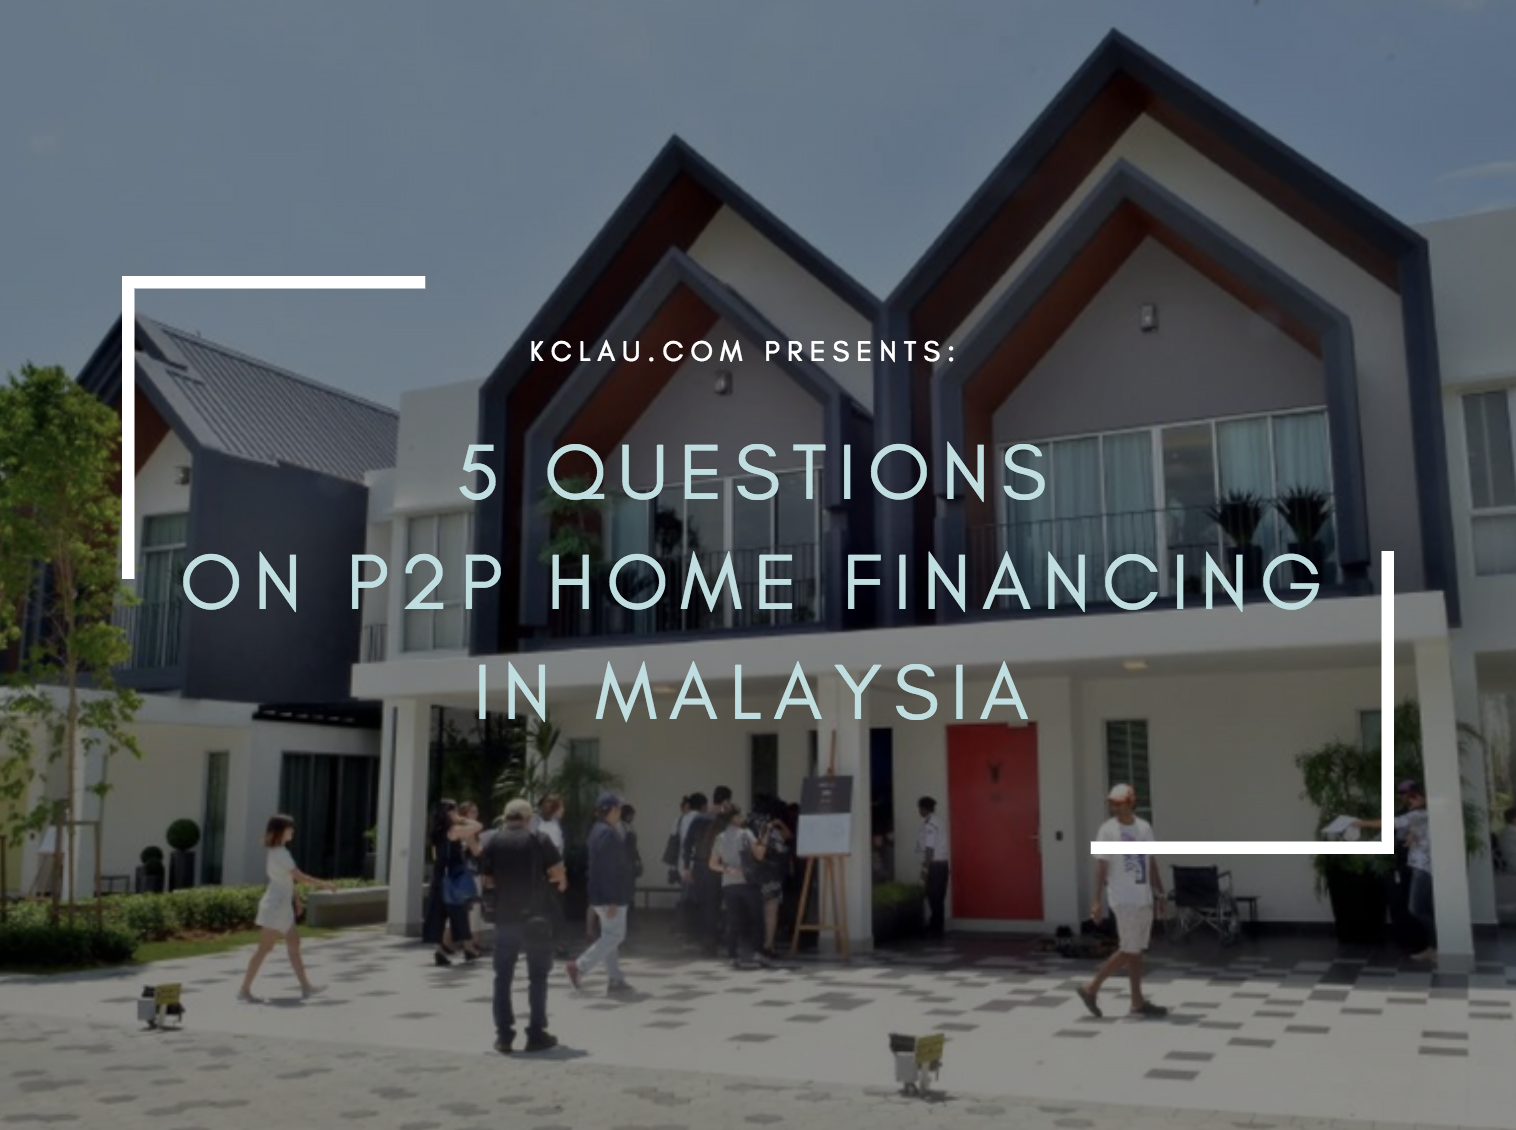 5 Questions I Have on P2P Home Financing in Malaysia